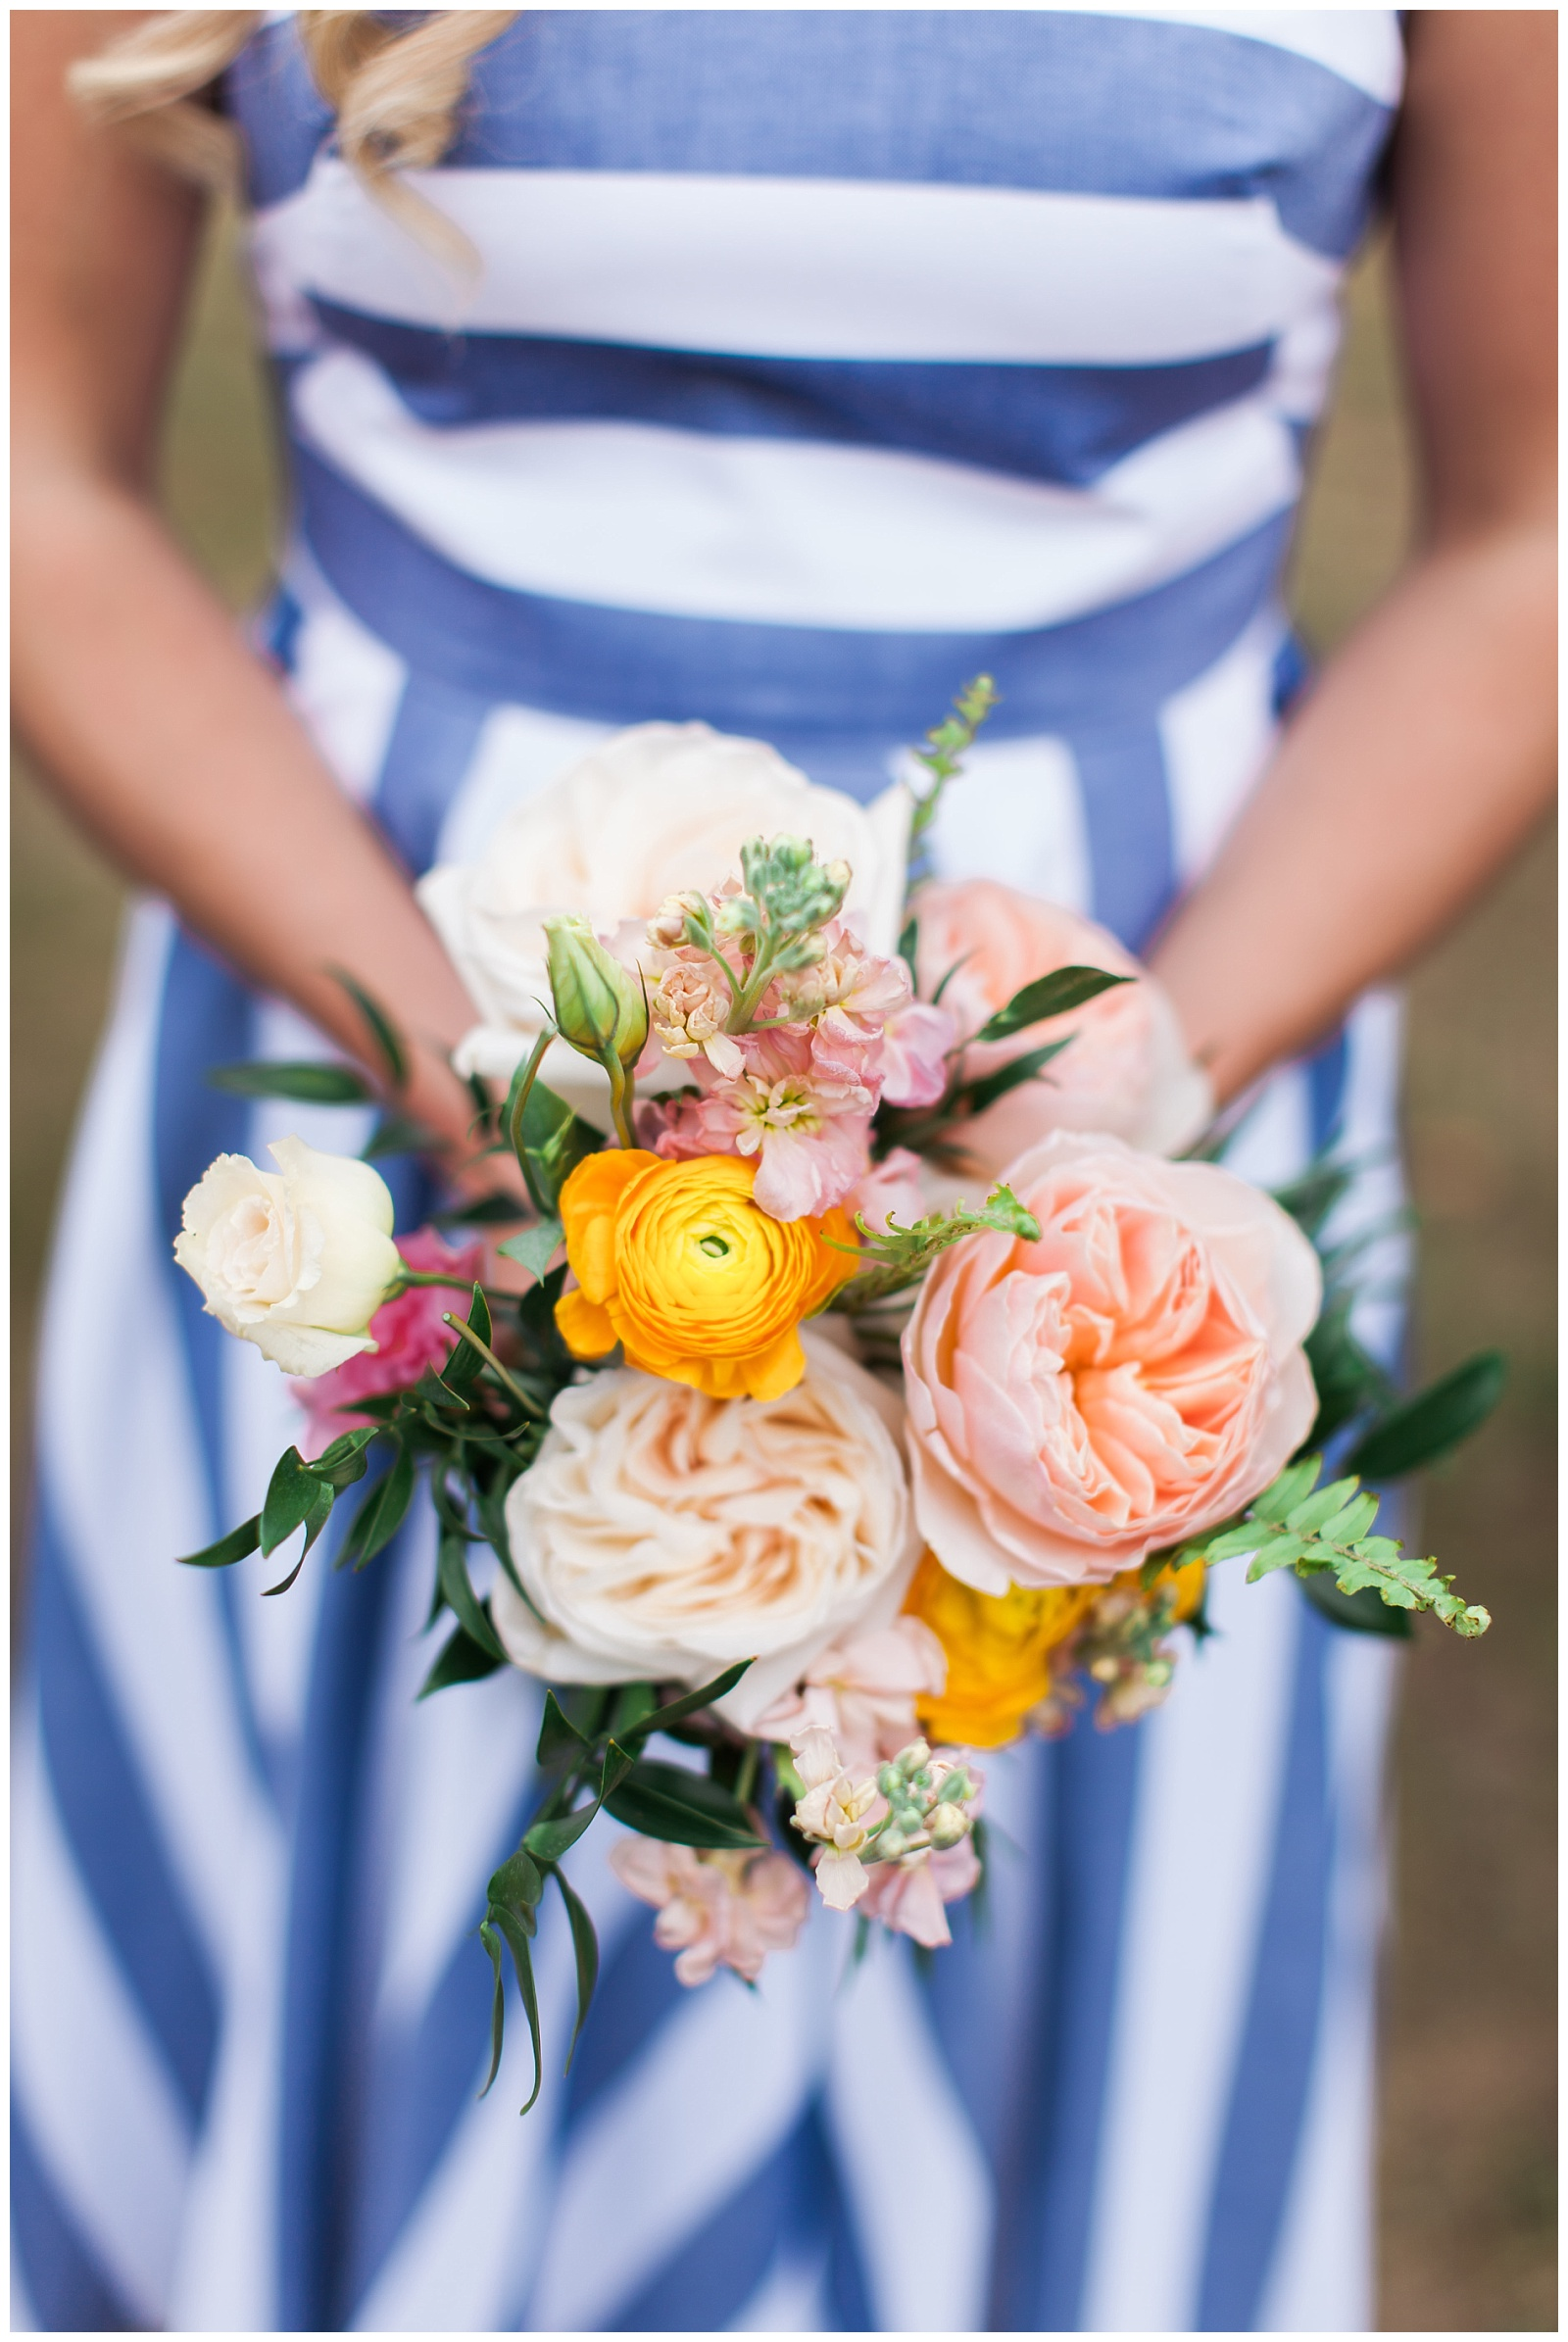 Bridesmaid bouquet with blue and white dress at Guelph Ontario Wedding | Ontario Wedding Photographer | Toronto Wedding Photographer | 3photography